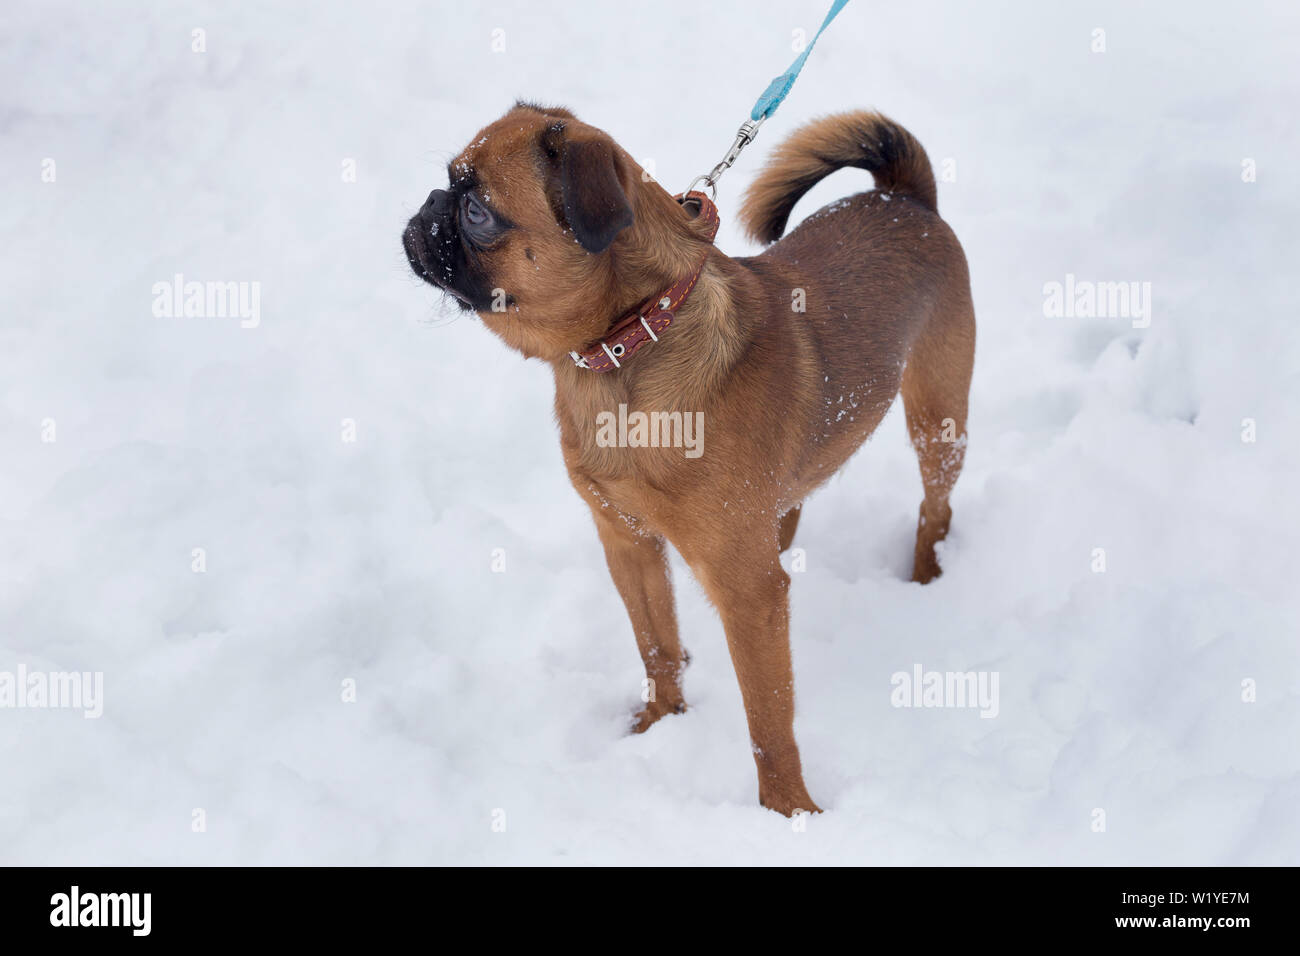 Cute petit brabancon puppy is standing on a white snow. Pet animals. Purebred dog. - Stock Image